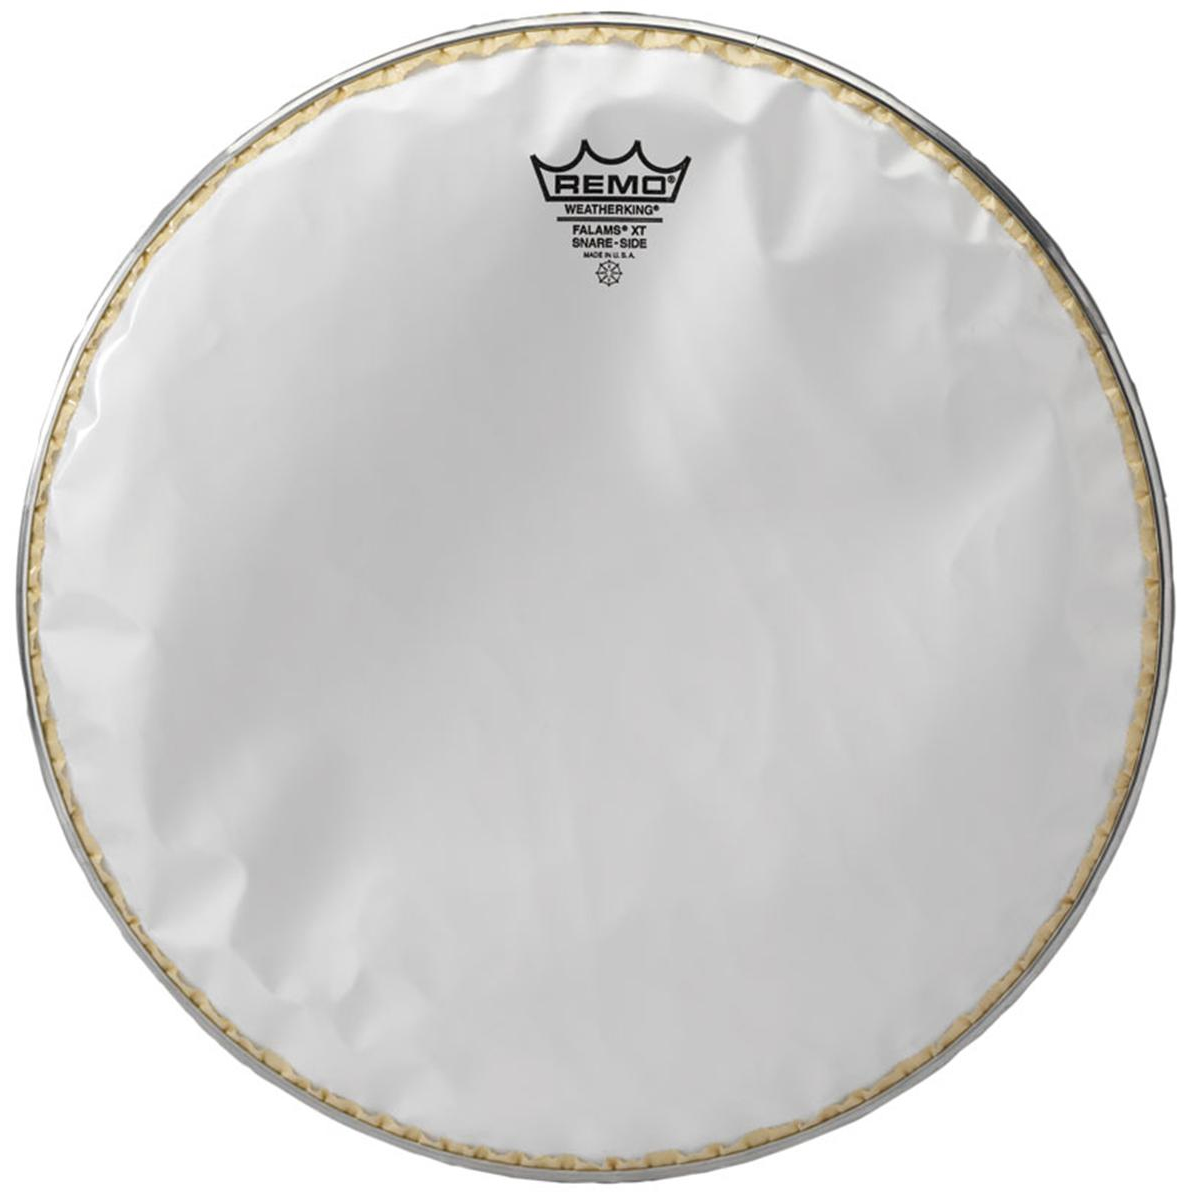 "Remo 13"" Falams XT Marching Snare Side (Bottom) Drum Head"